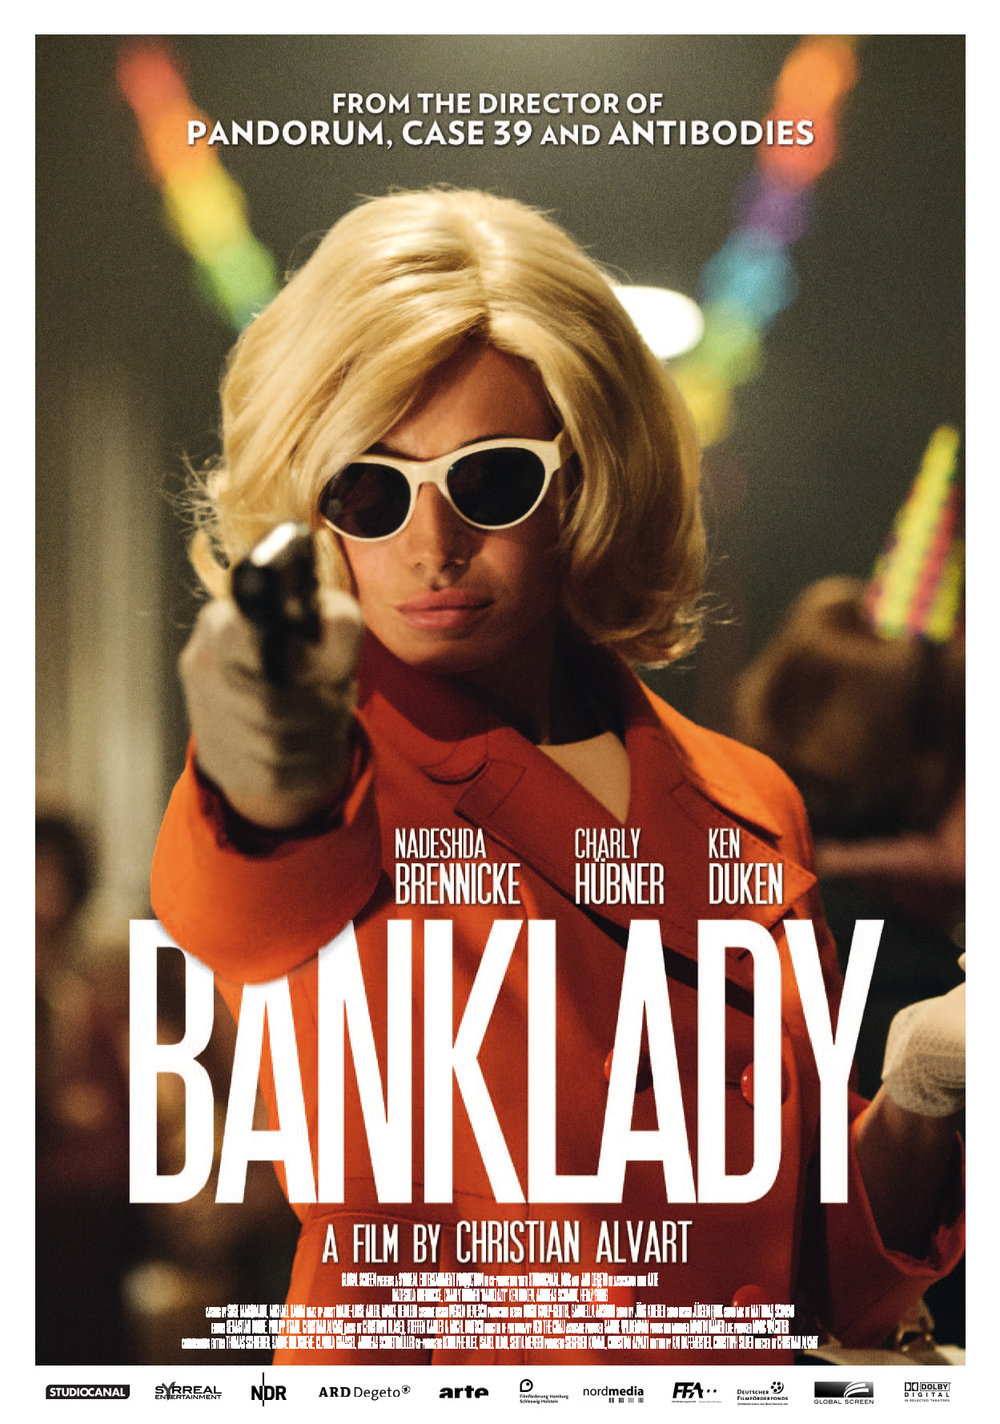 BANKLADY, October 6, 6:30 PM - RSVP